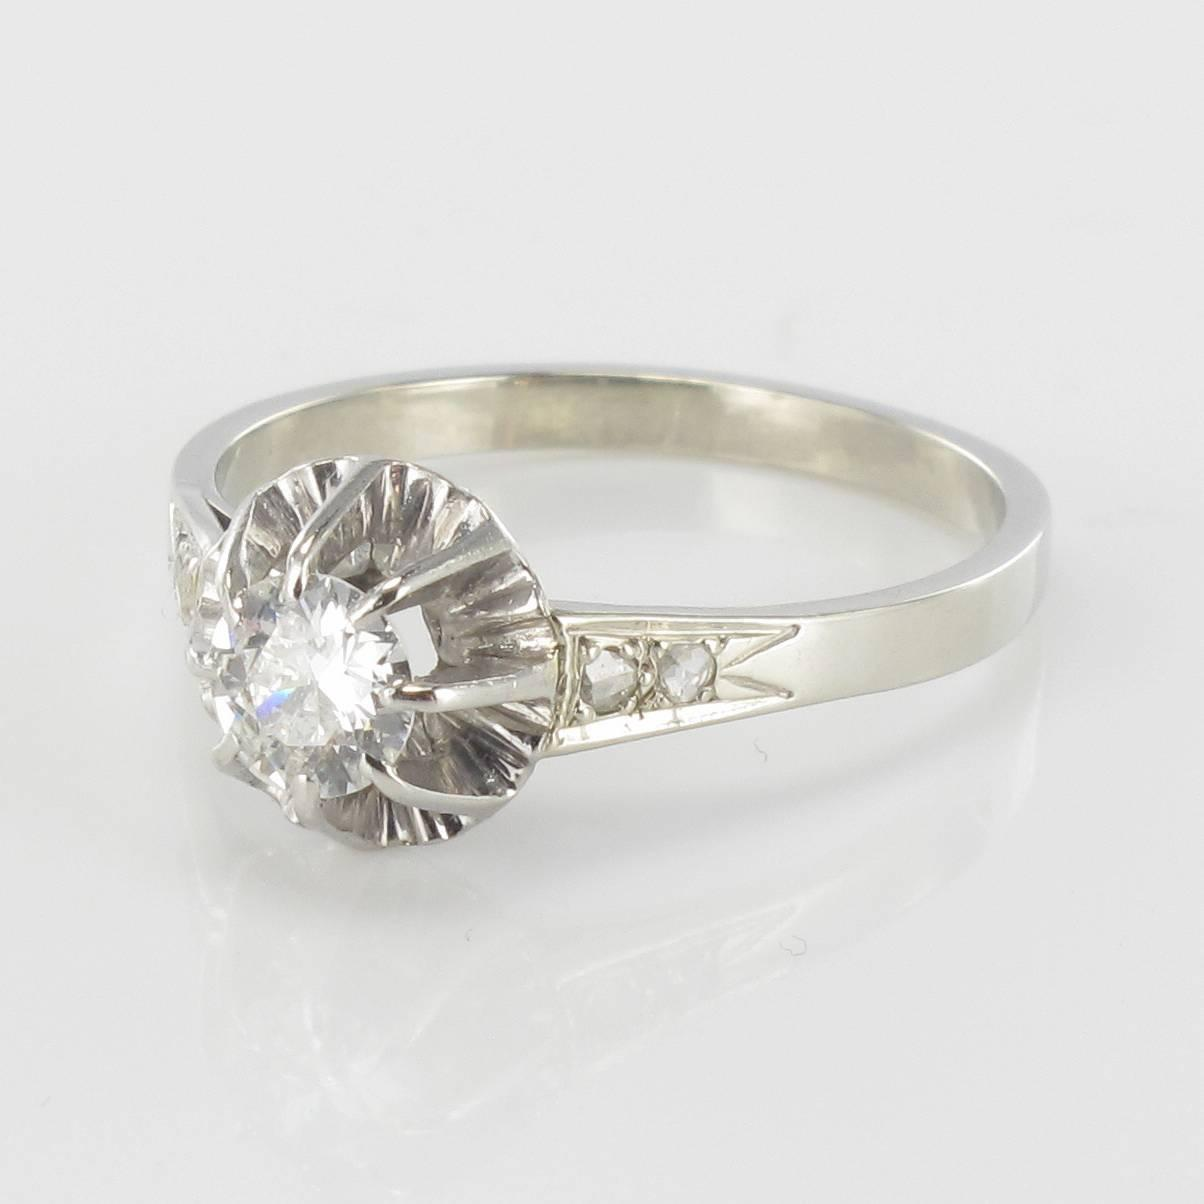 Antique diamond ring For Sale at 1stdibs